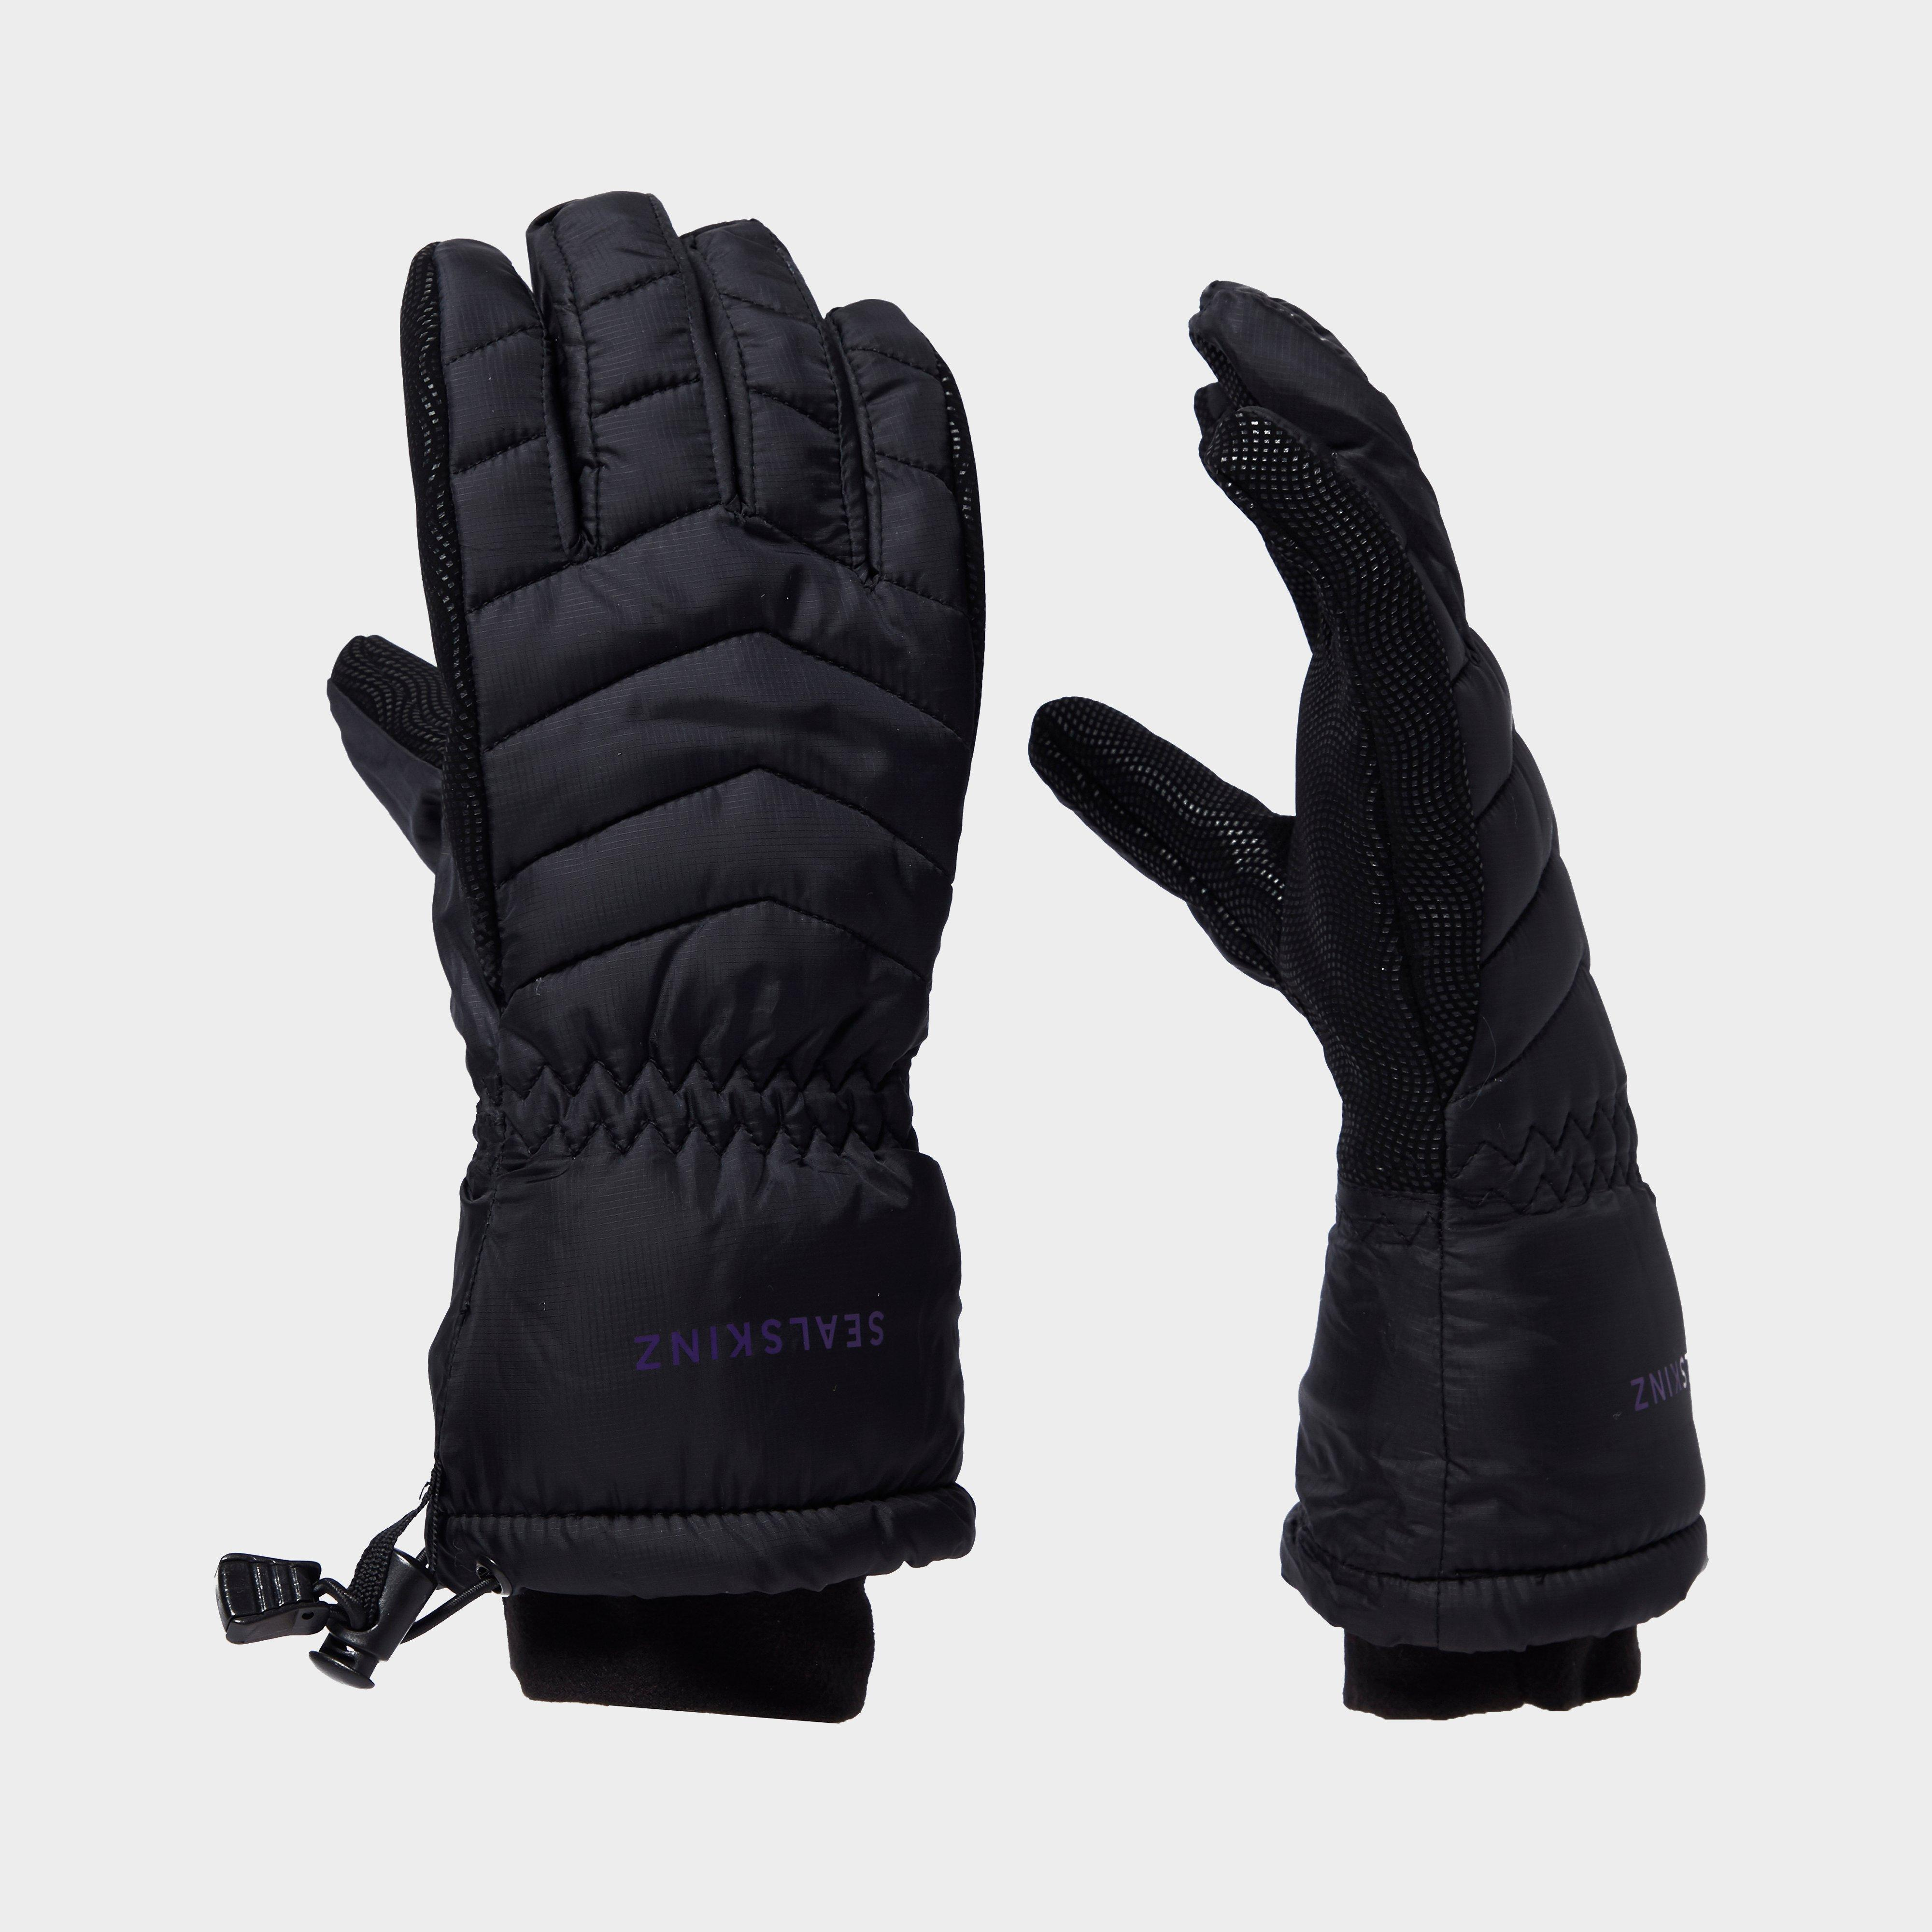 Sealskinz Women's Hybrid Outdoor Gloves, Black